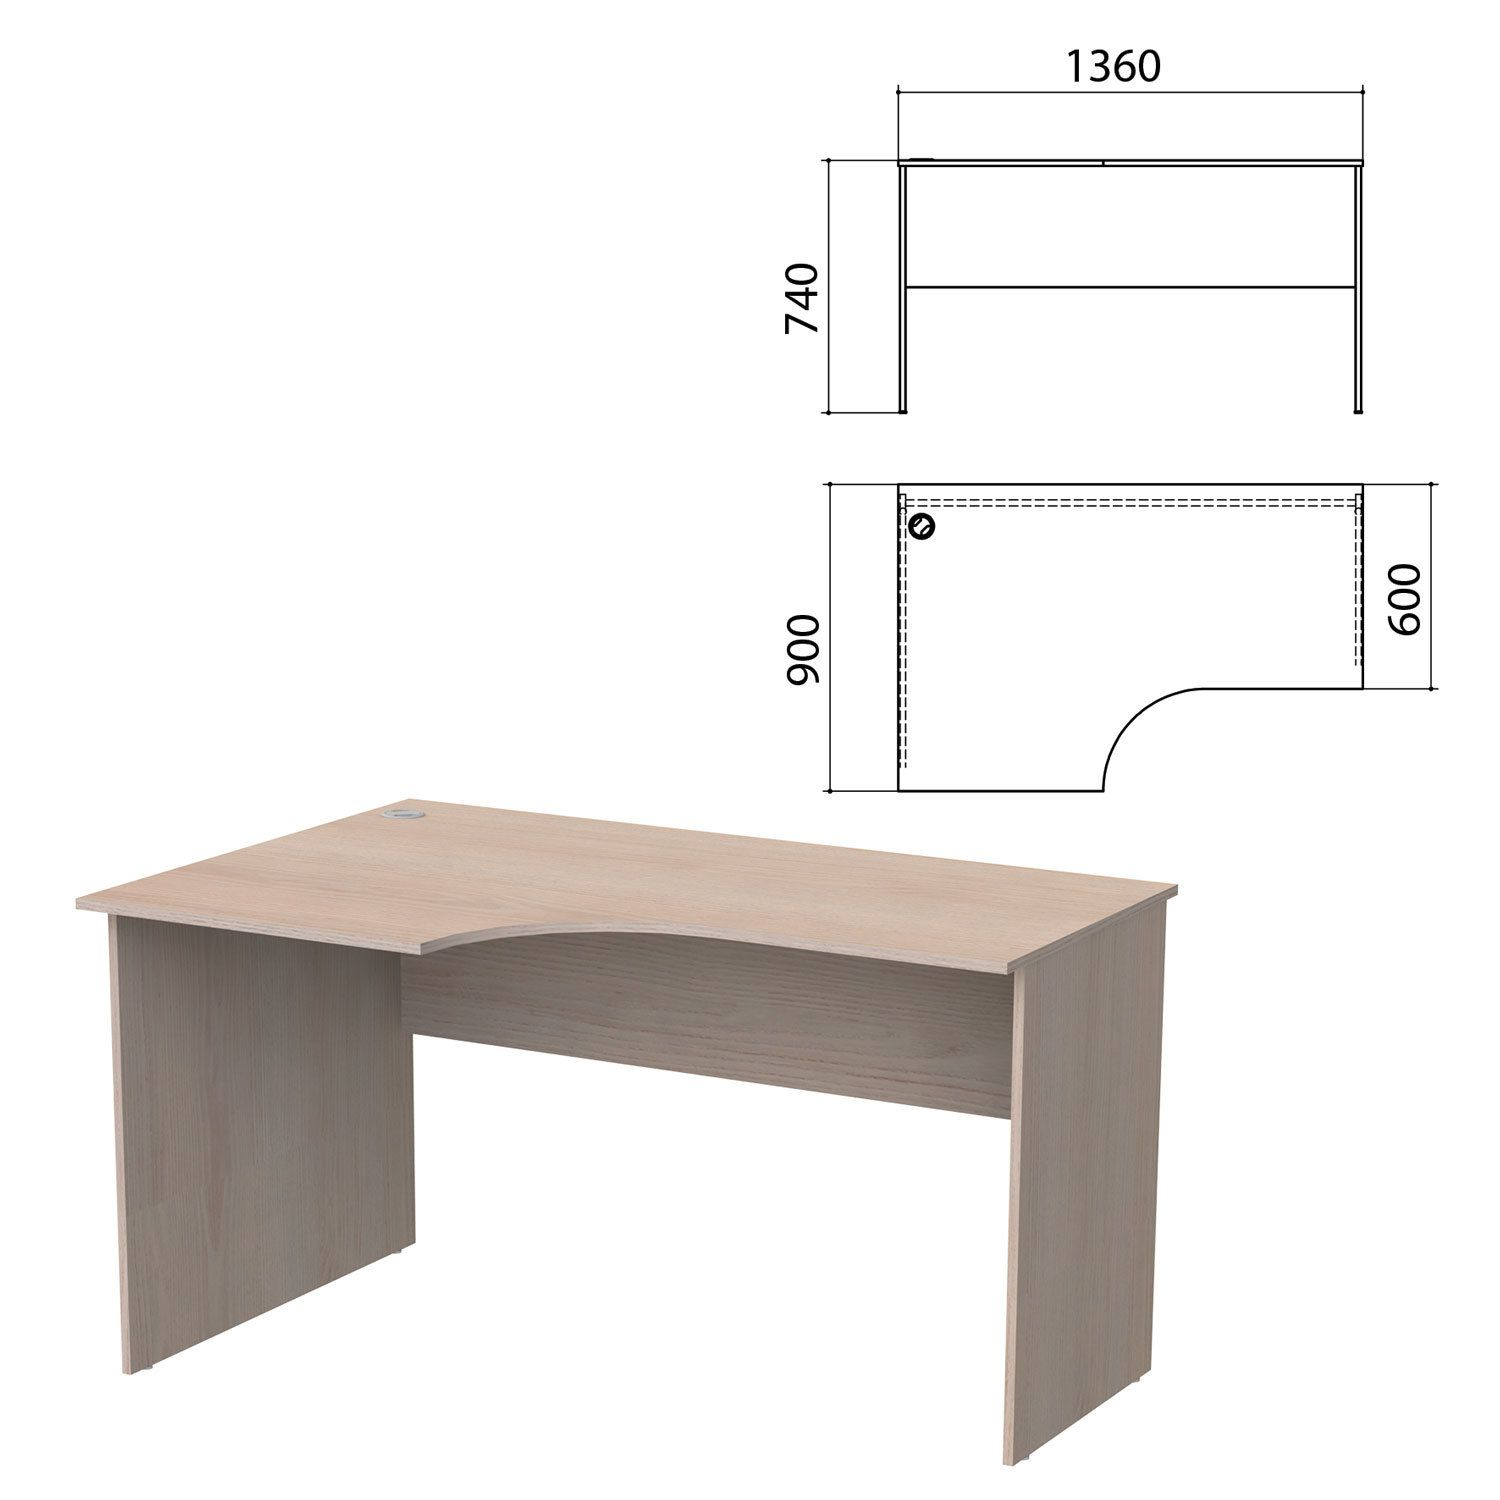 "Table written ergonomic ""Budget"" 1360s900s740 mm, left, hickory jackson"